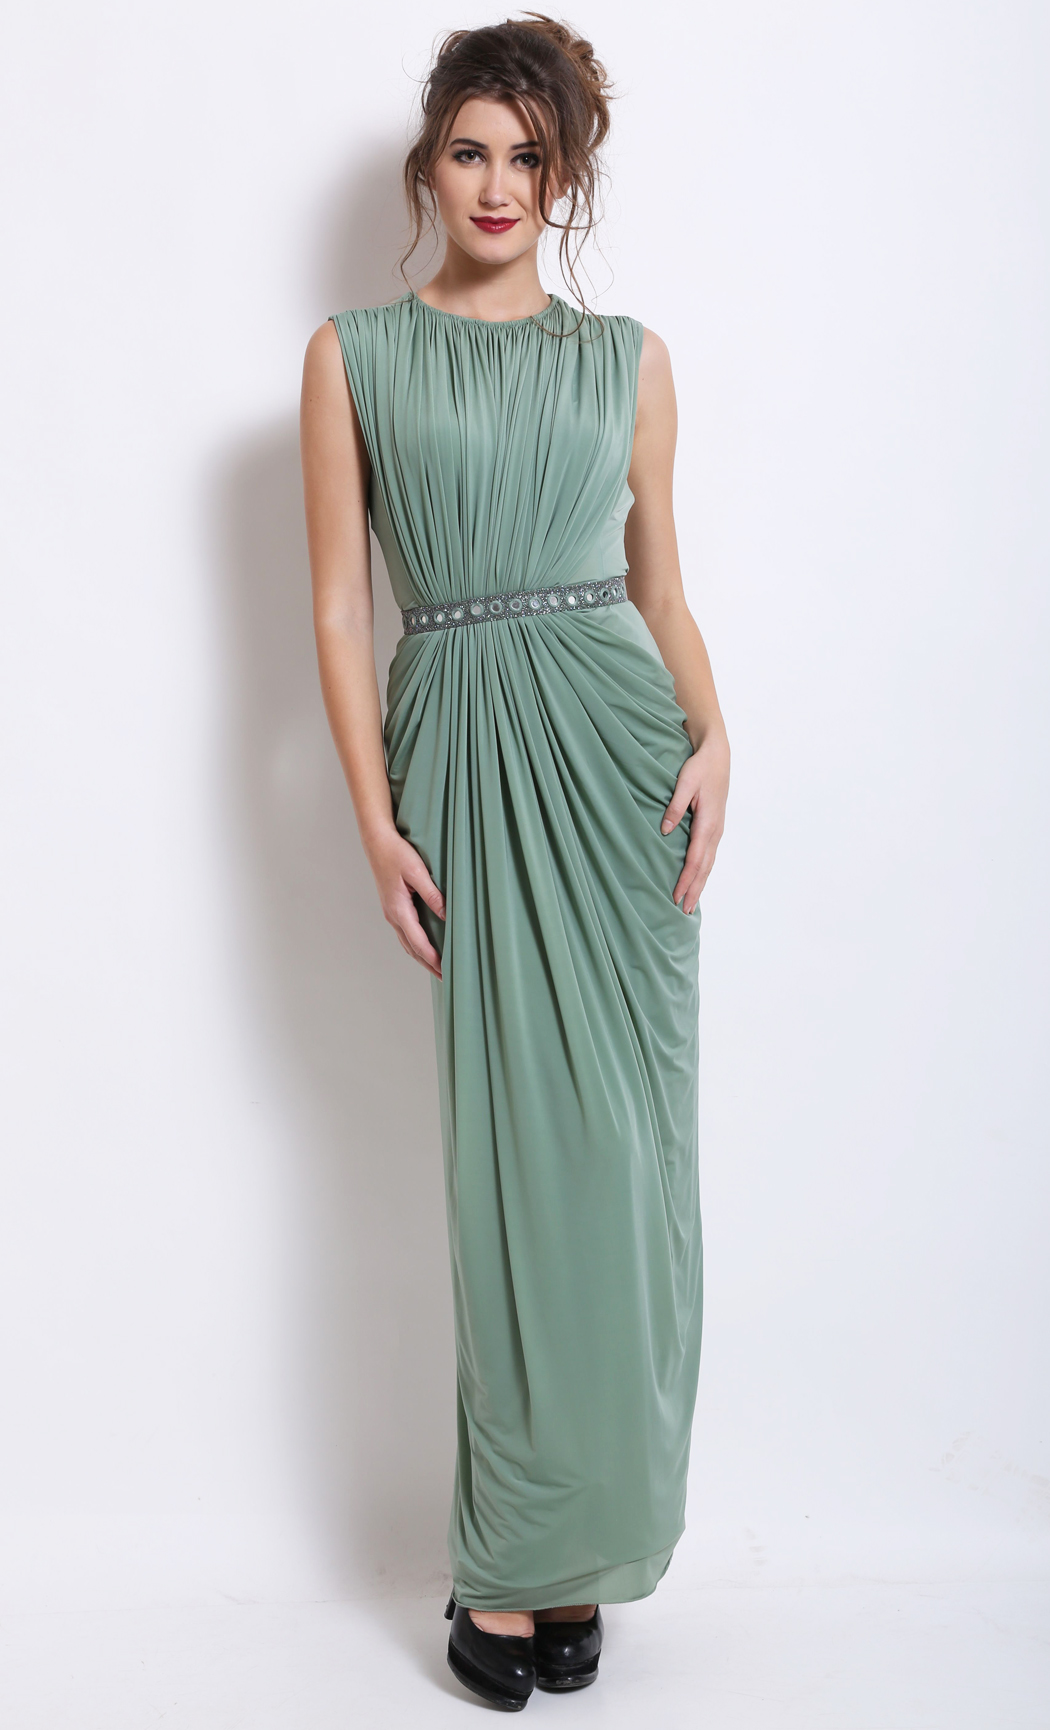 Green Pleated and Draped Cocktail Dress - Buy Online